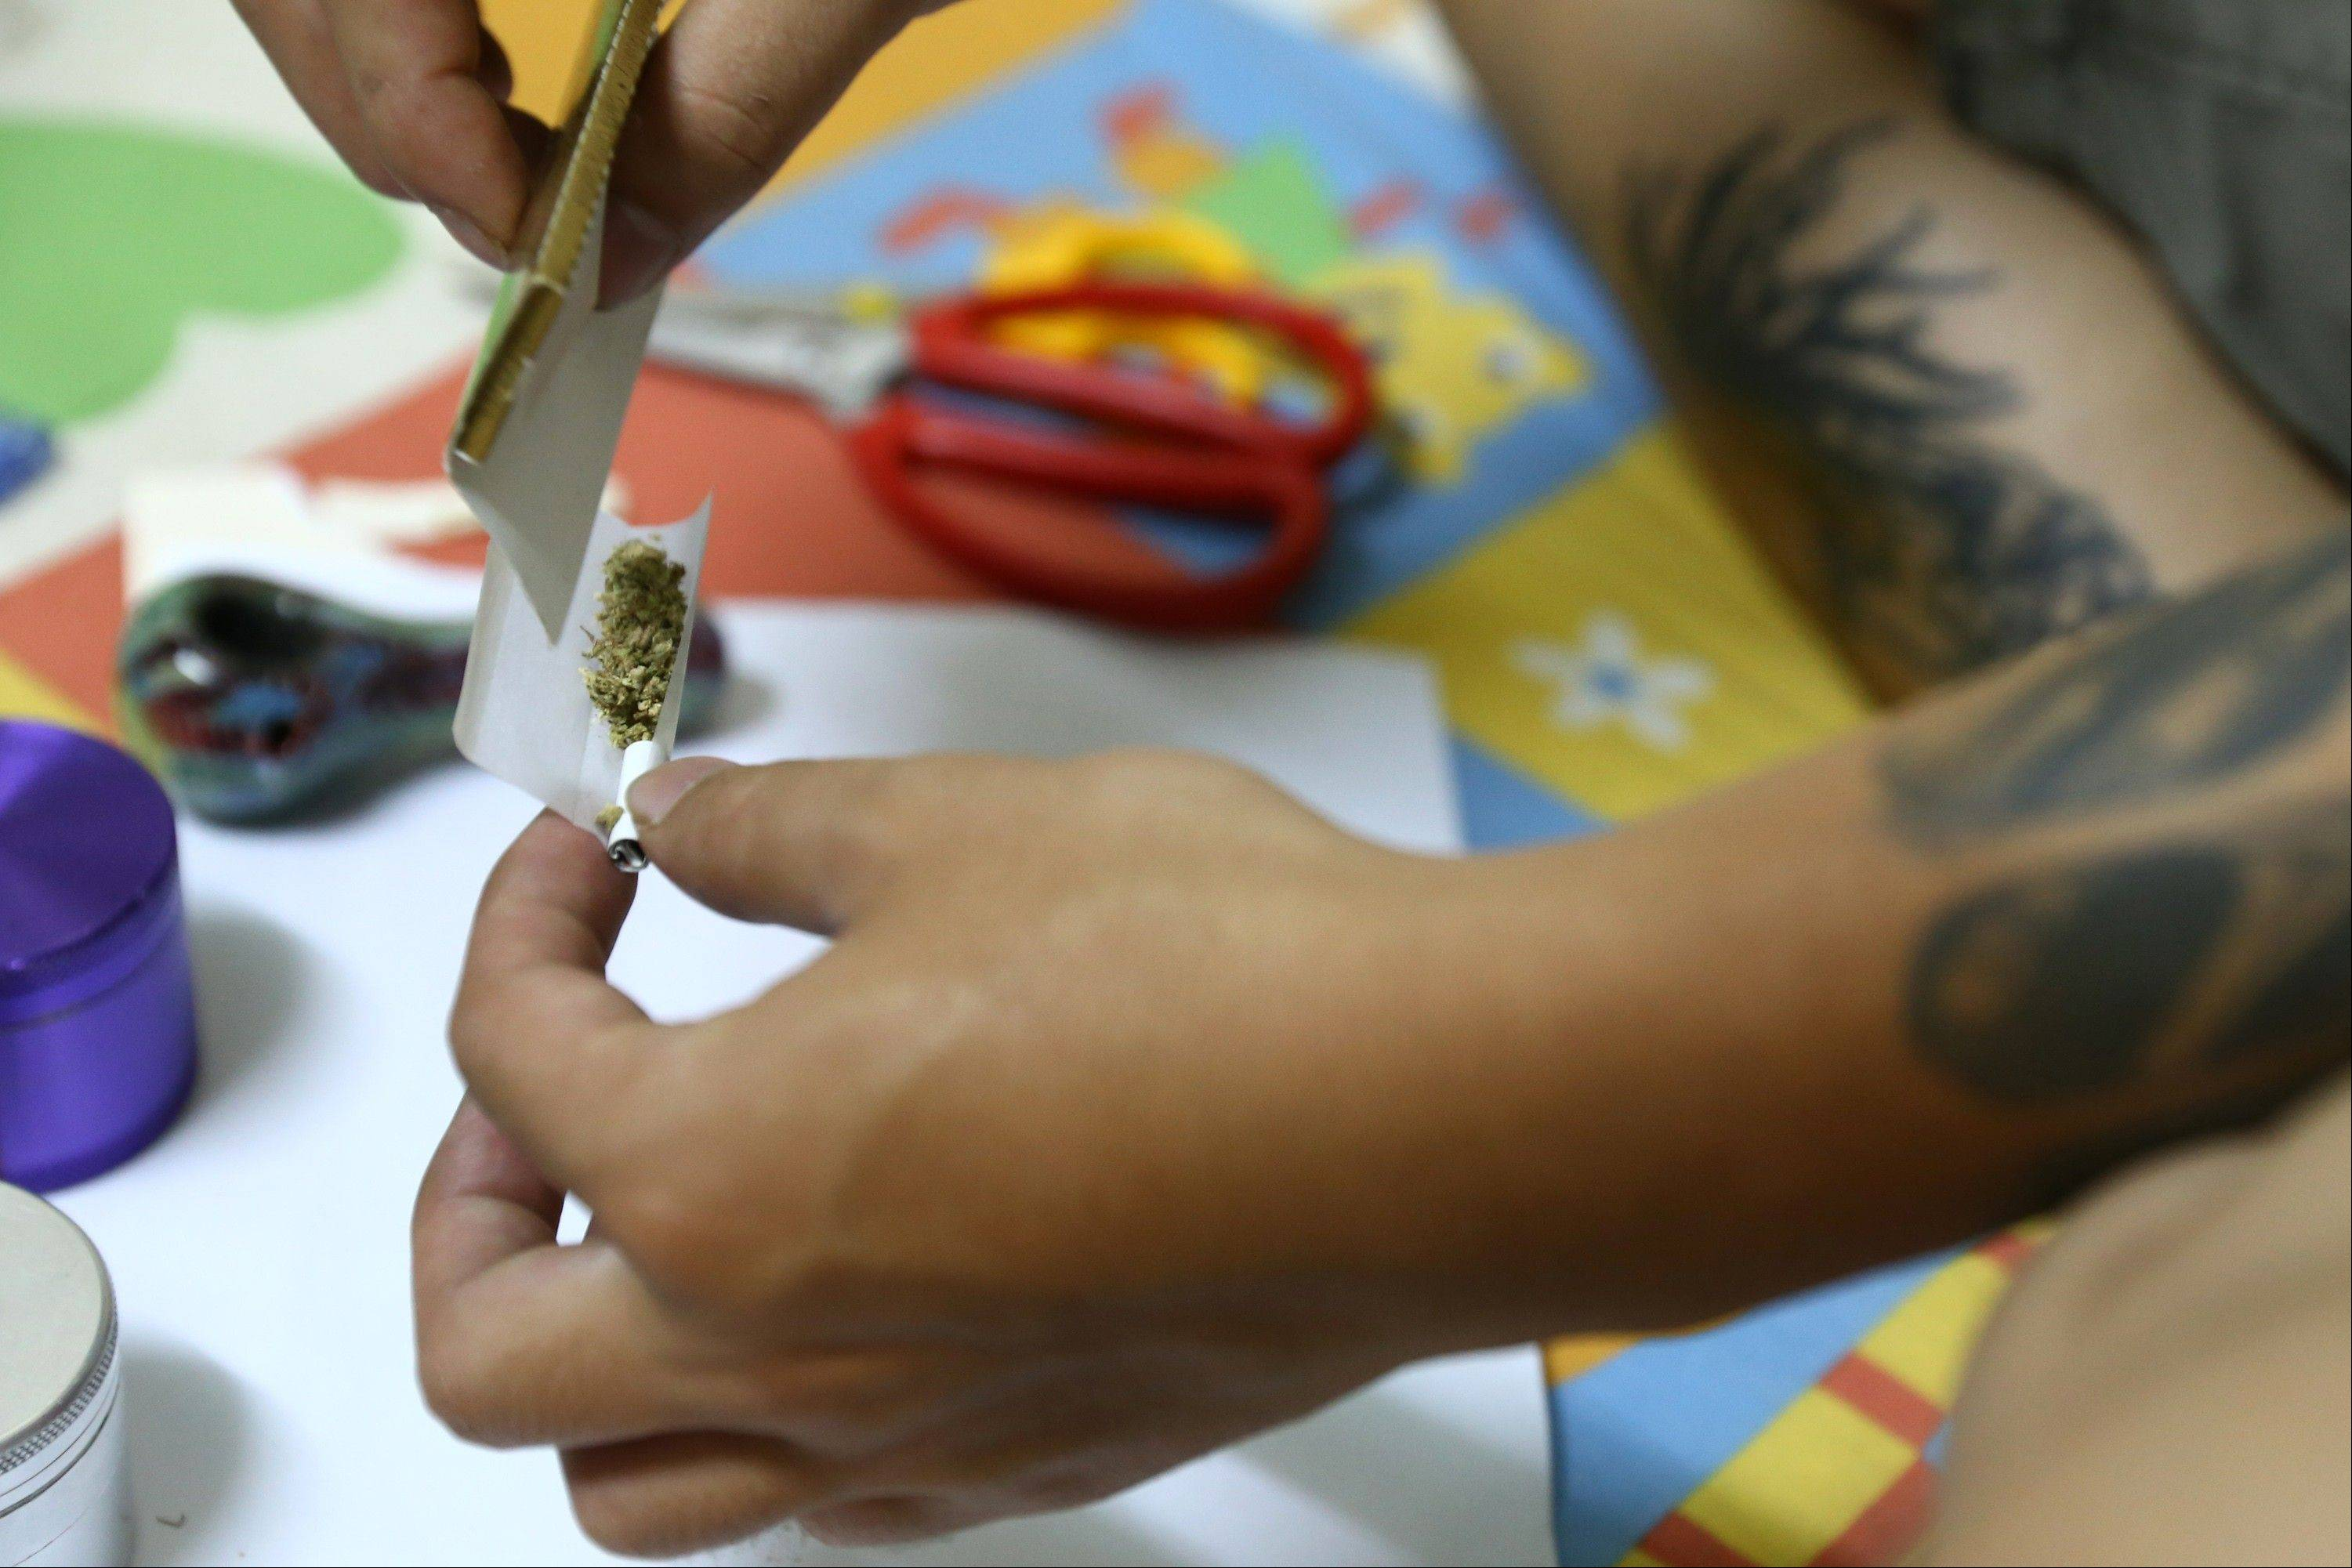 A man rolls a joint with Canadian-grown marijuana at his room in the old quarter area of Hanoi. Western-grown marijuana is available in Vietnam and popular among its elite, a result of its passion for imported products and the widespread involvement of Vietnamese diaspora gangs in the cultivation of marijuana in North America and Europe.